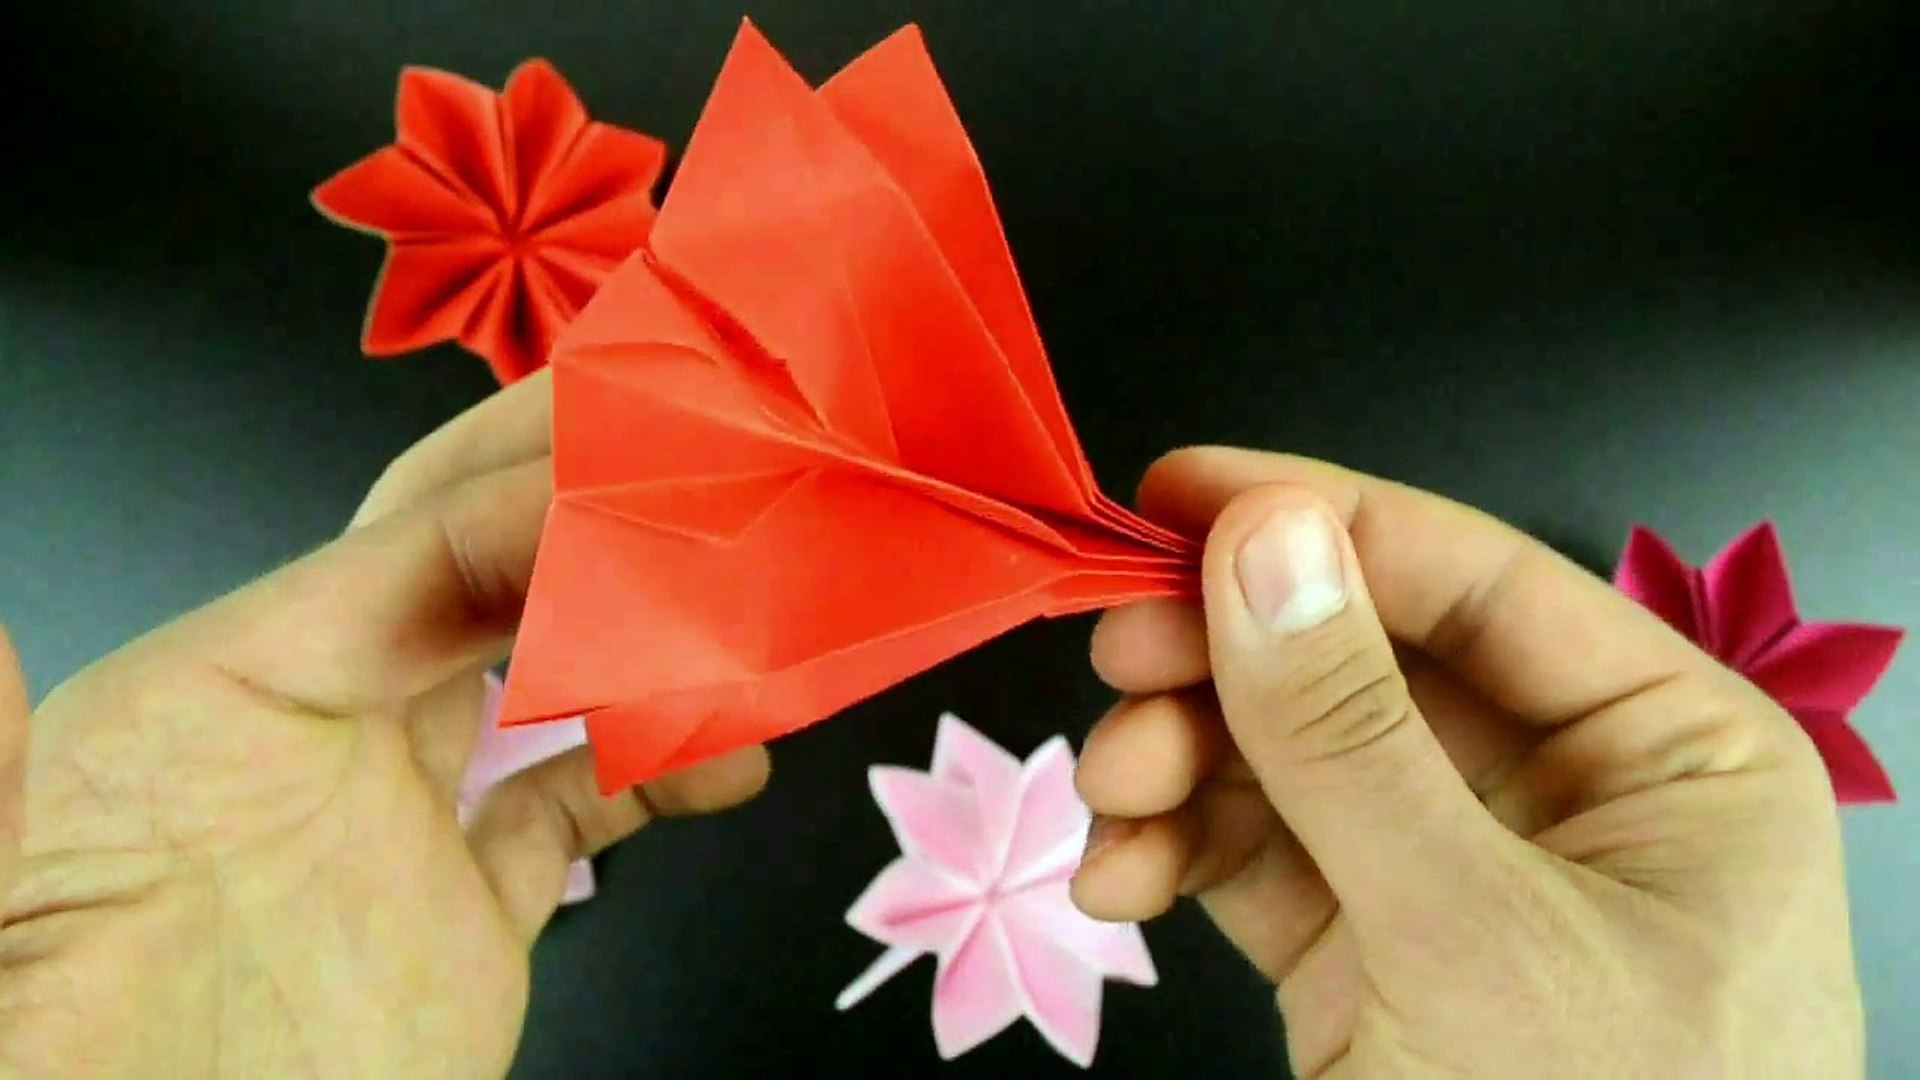 Lily Flower - Origami How To Make Paper Lily Flower | Traditional ... | 1080x1920